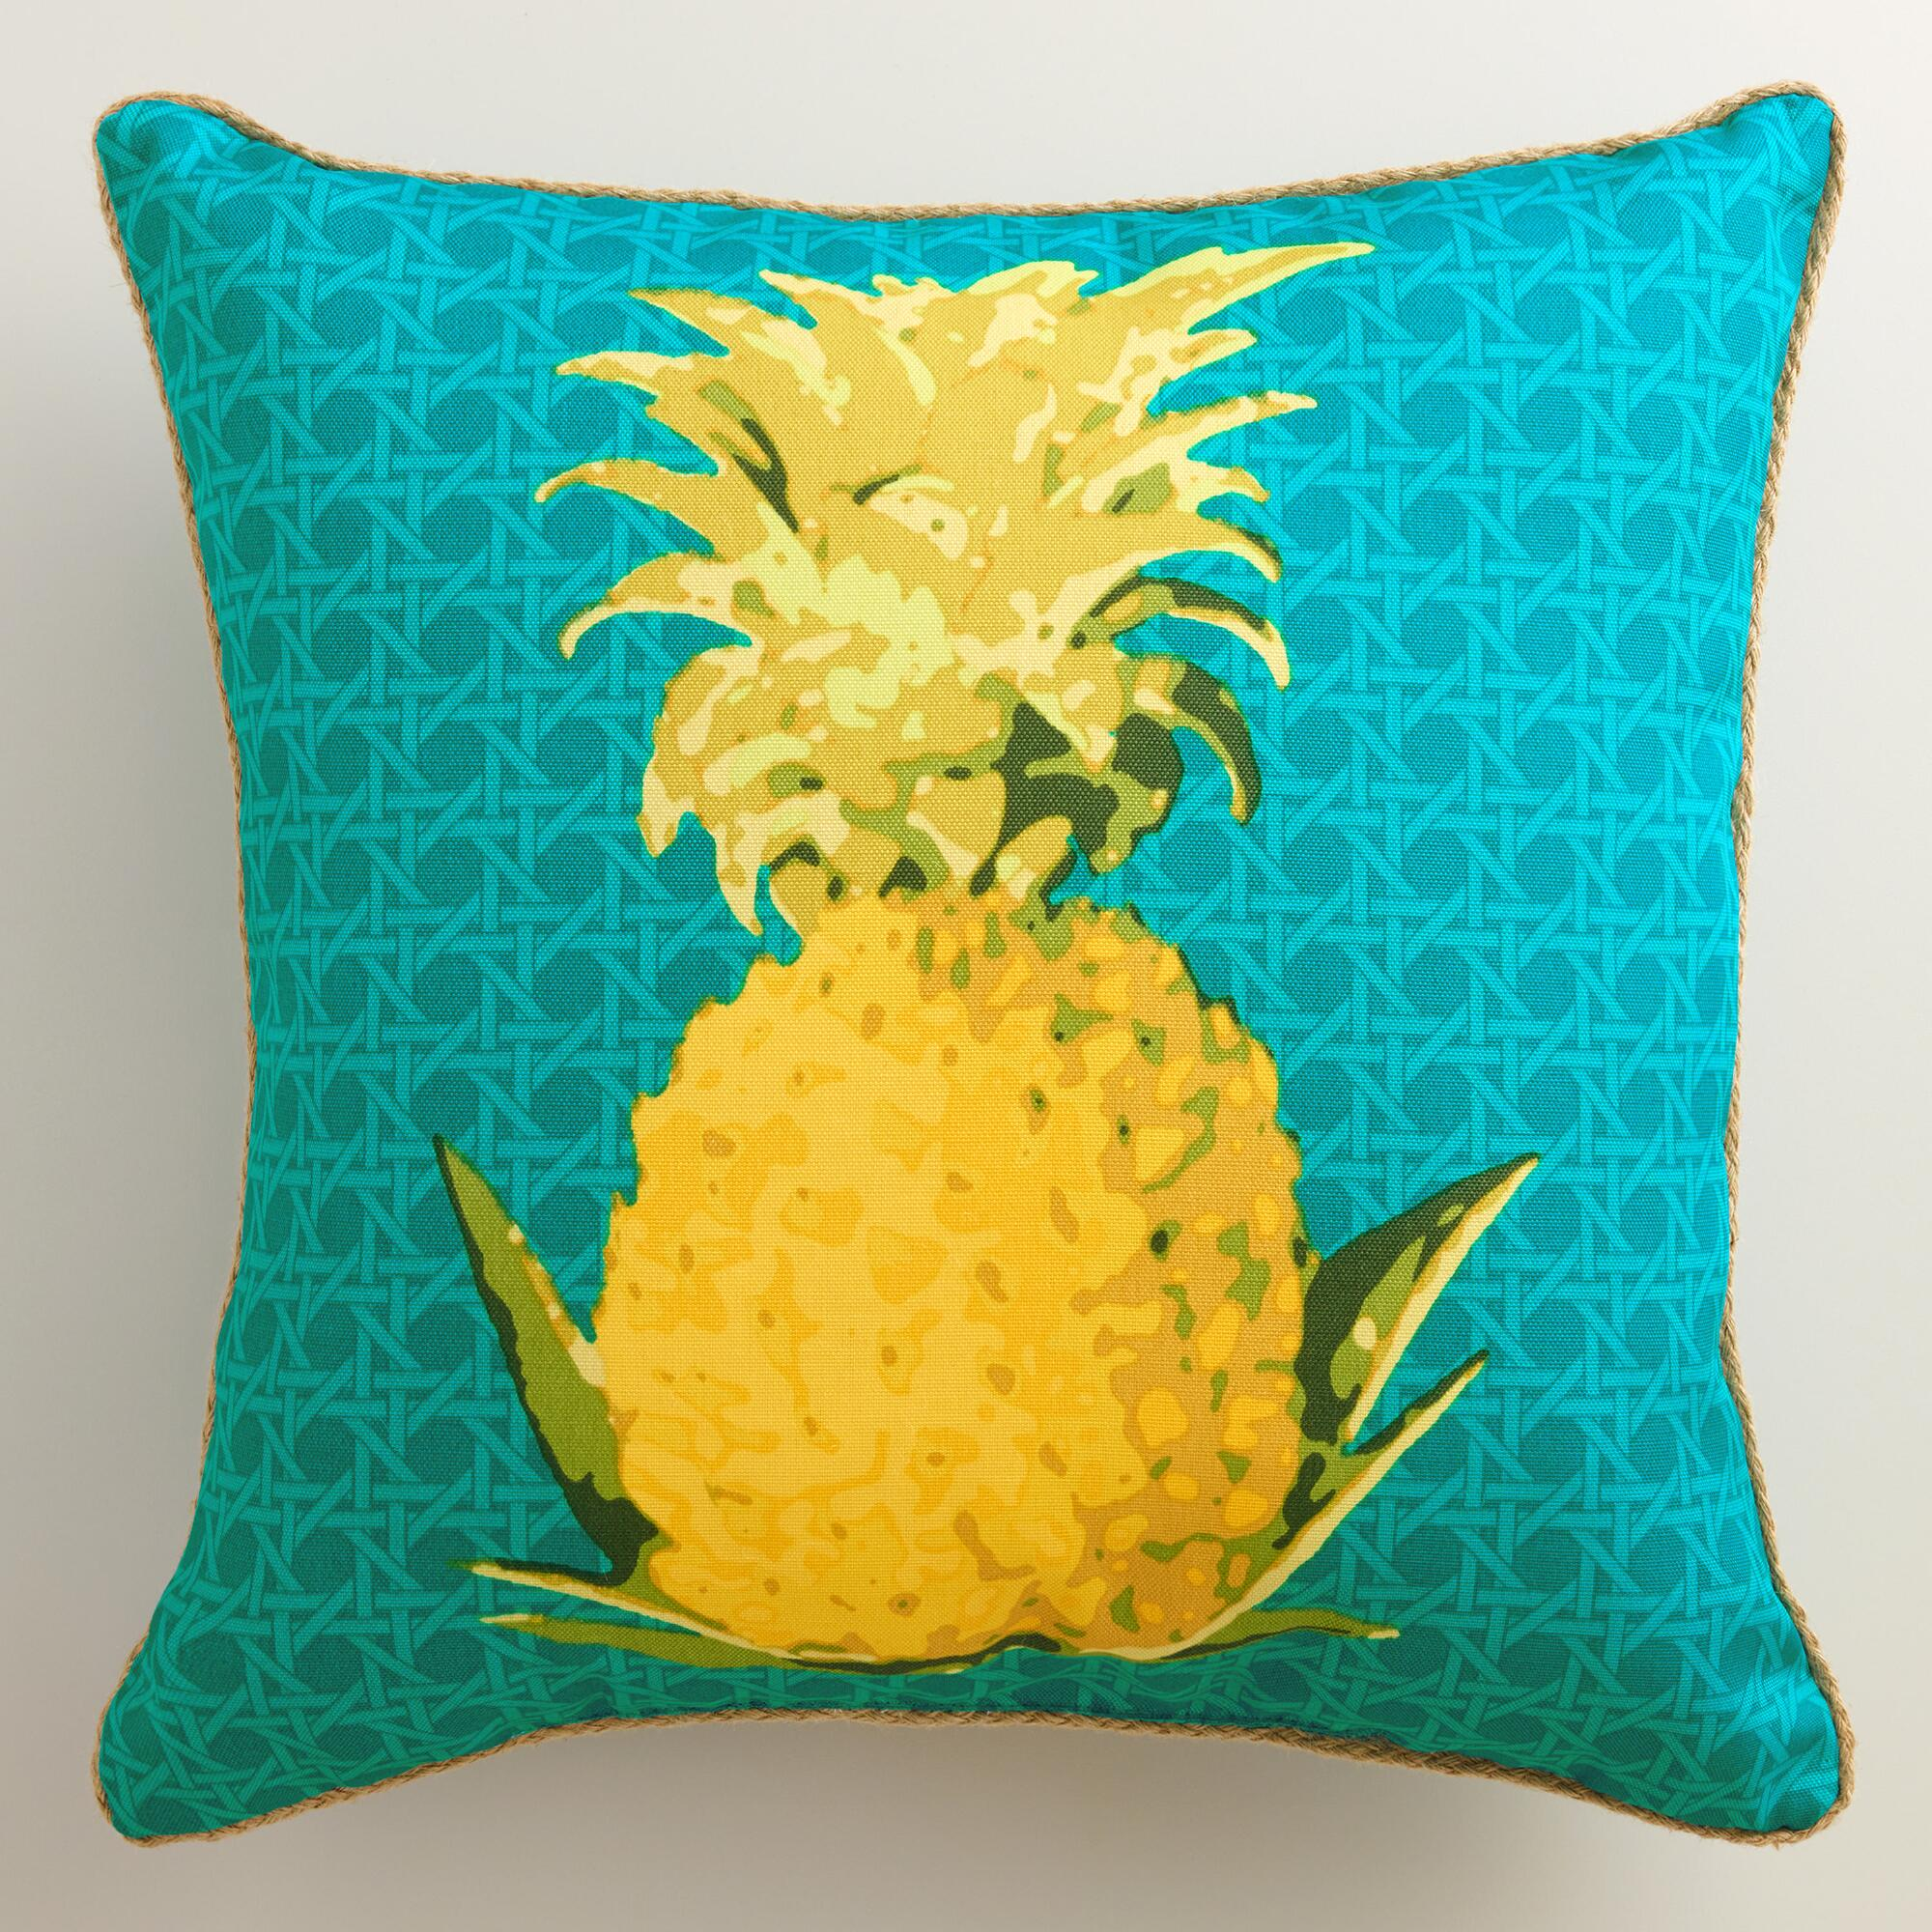 Mesmerizing outdoor throw pillows for outdoor design with cheap outdoor throw pillows